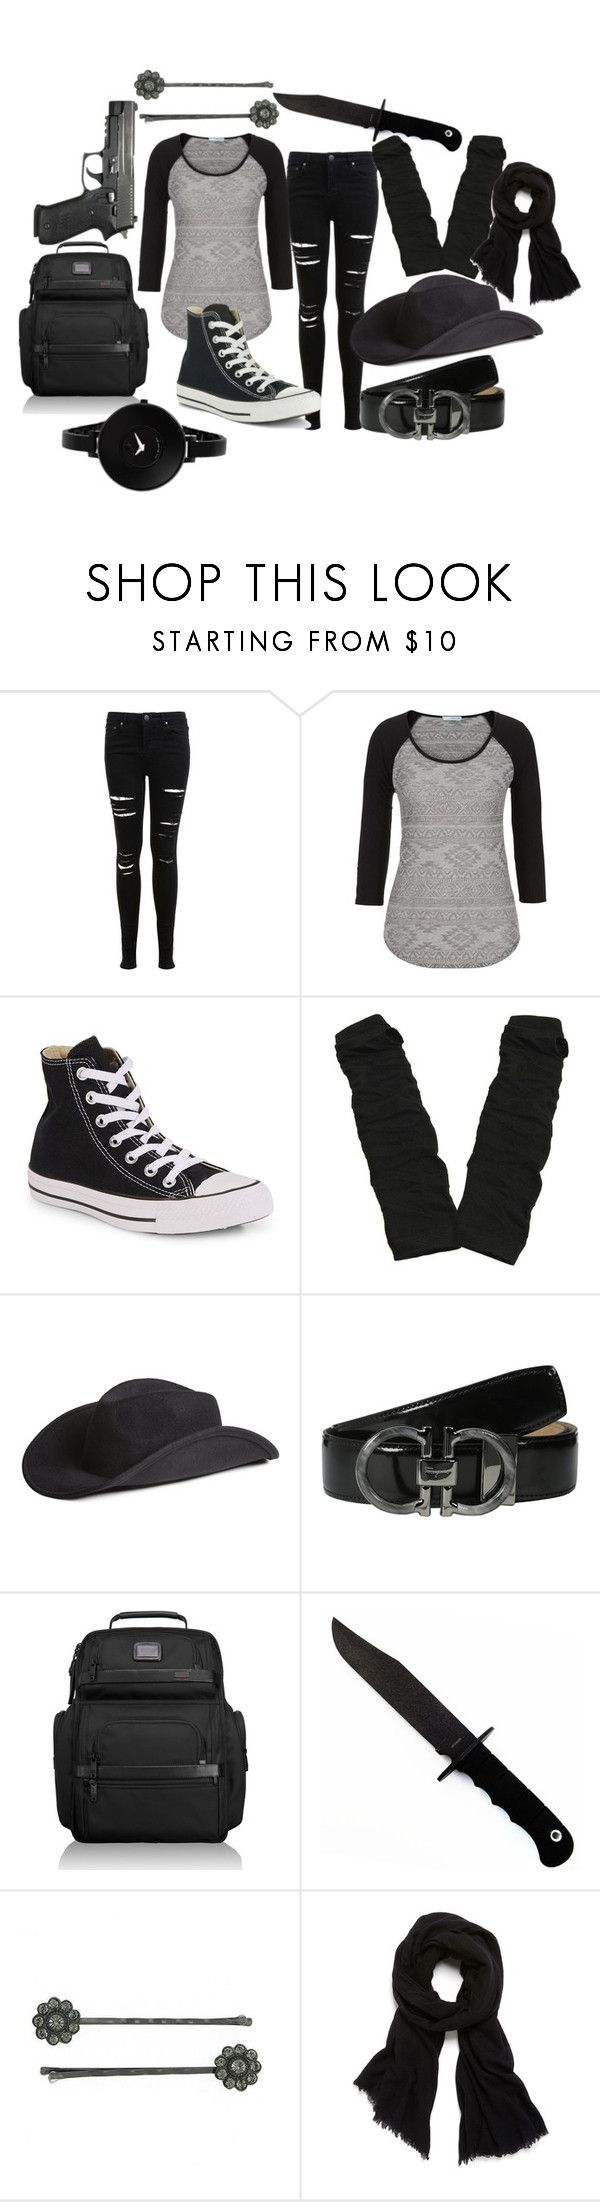 """""""Evan Rhee *The Walking Dead Fanfiction*"""" by lauren-mossgotheridge ❤ liked on Polyvore featuring Miss Selfridge, maurices, Converse, H&M, Salvatore Ferragamo, Tumi, 1928, Helmut Lang and Movado"""